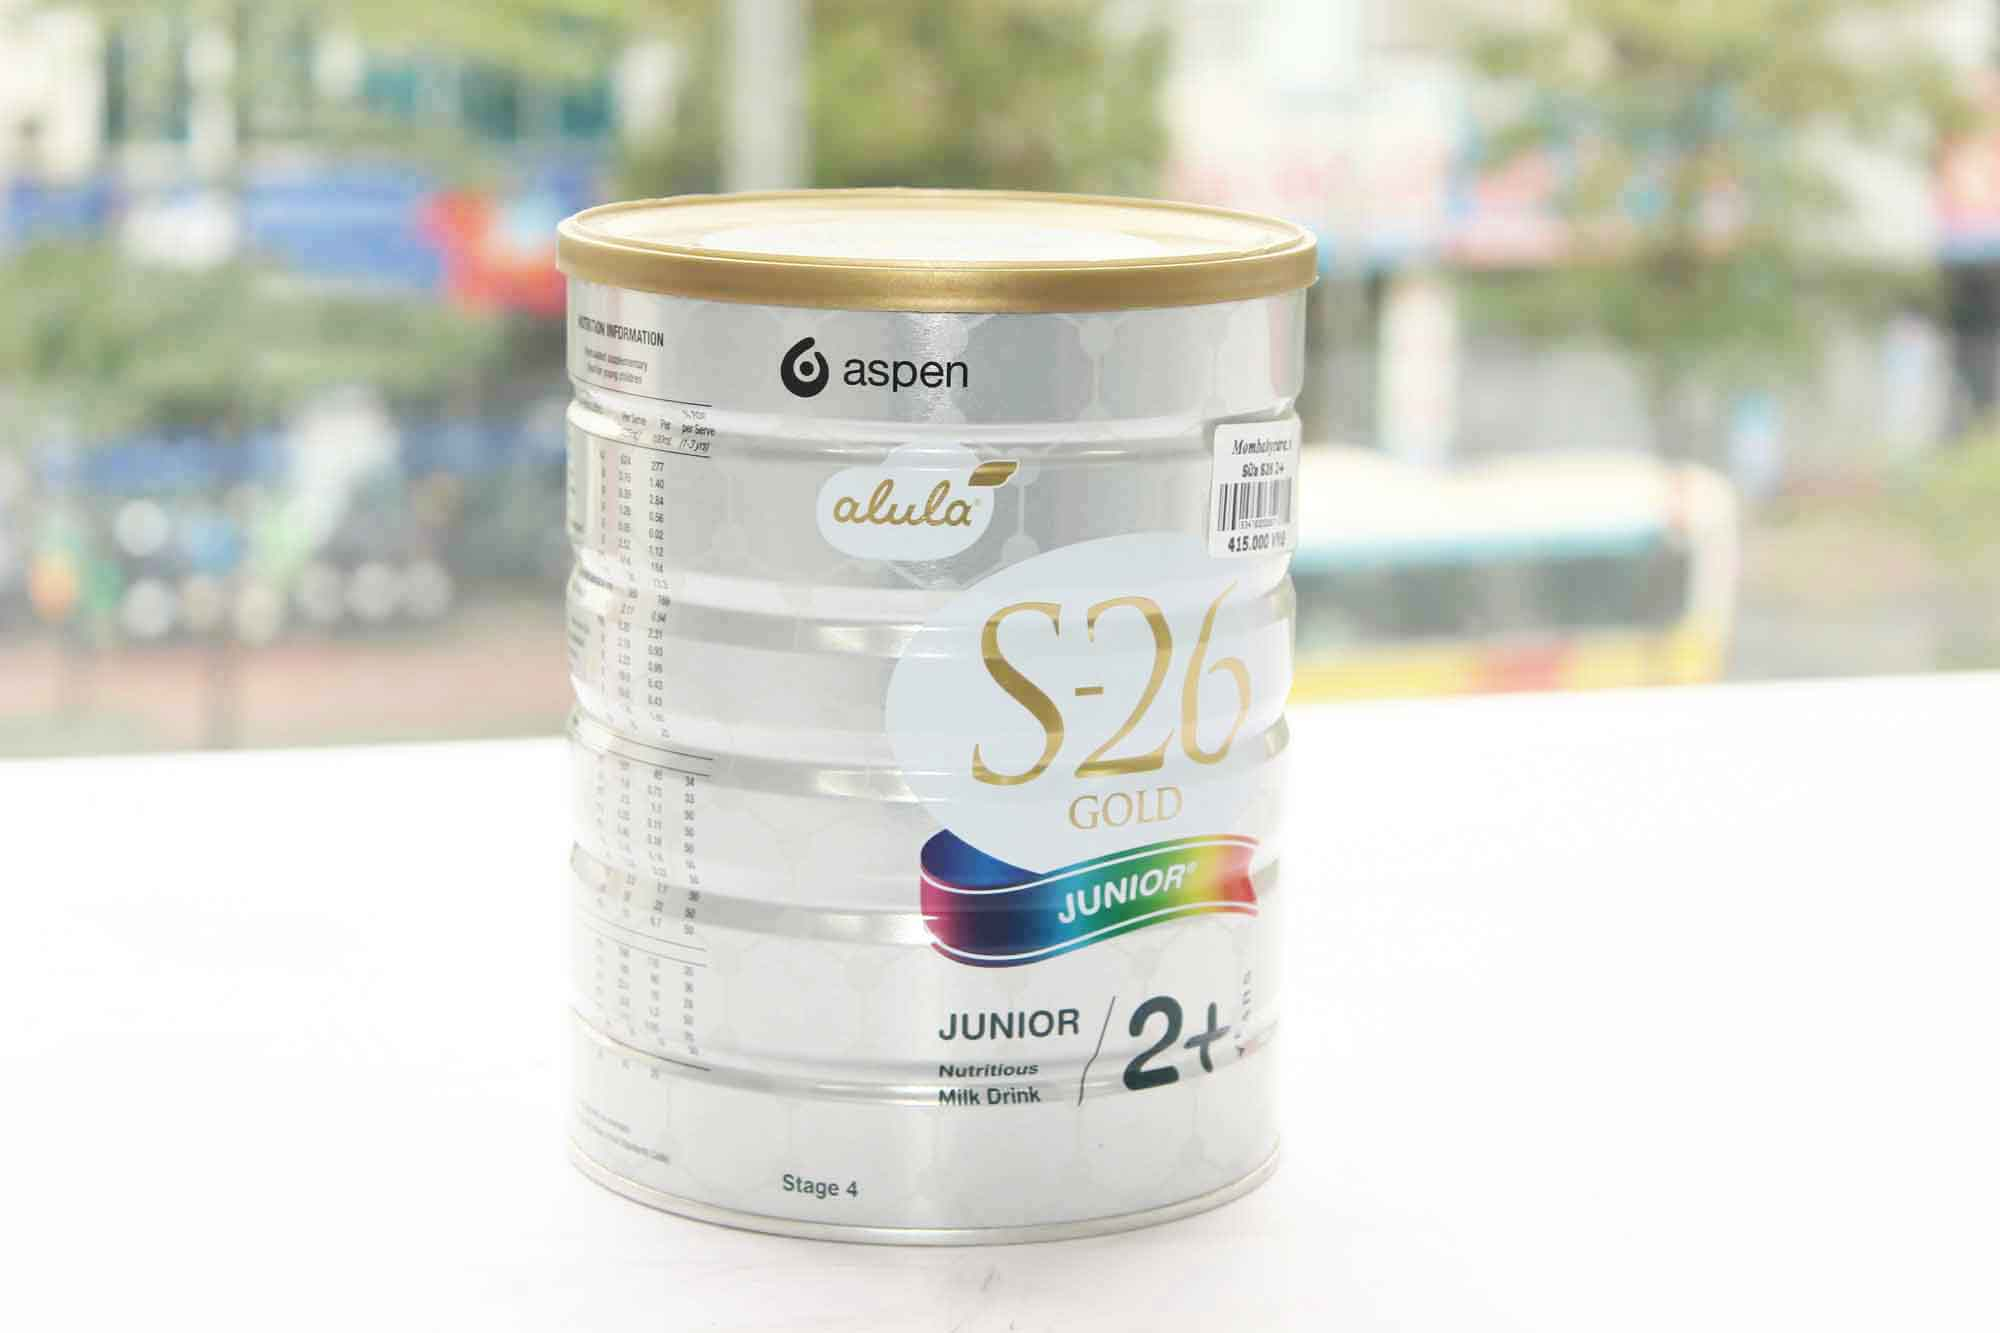 S26 Gold